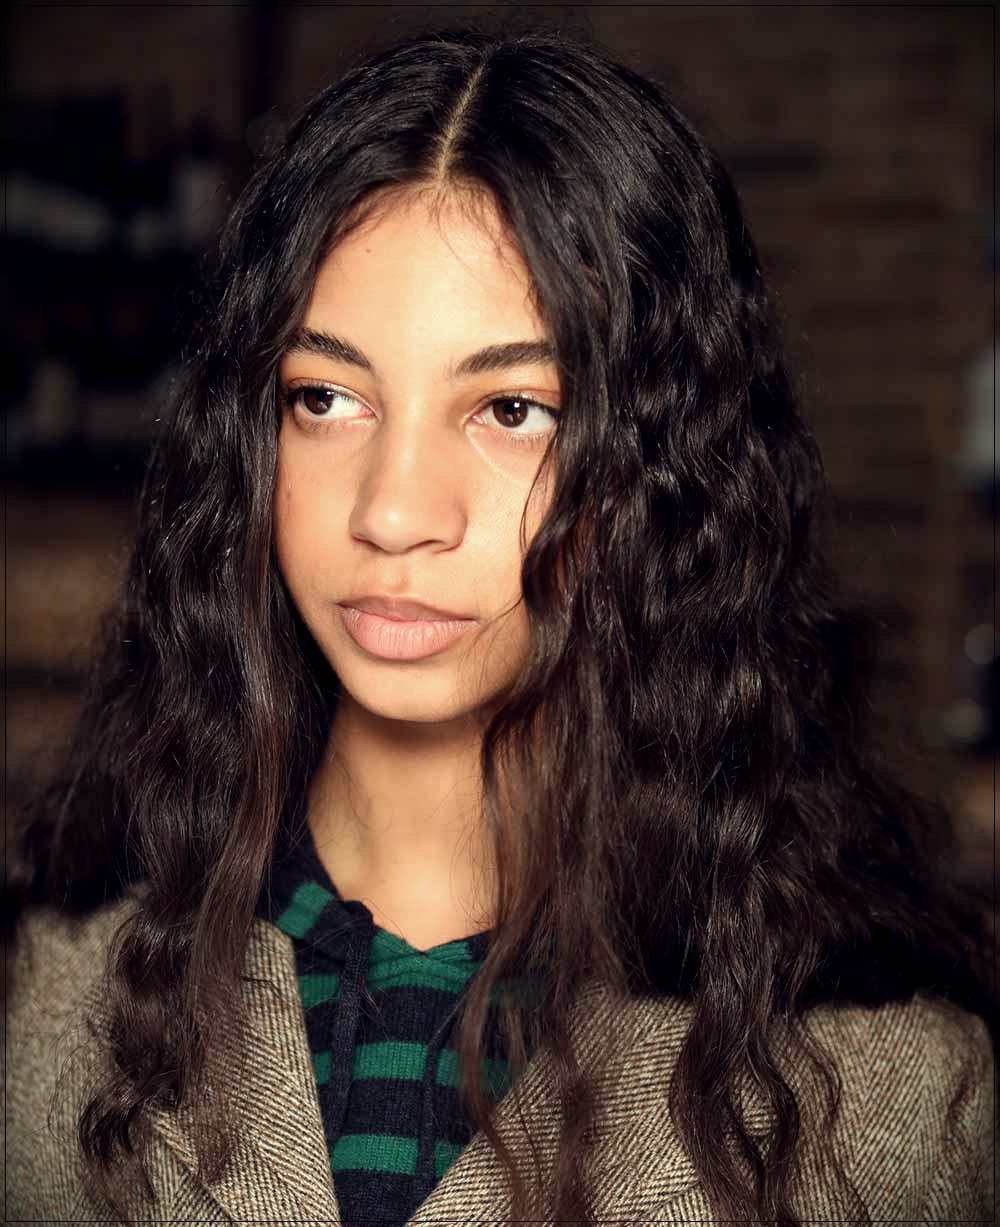 Hair Trends Fall Winter 2019 2020: The Looks Of The